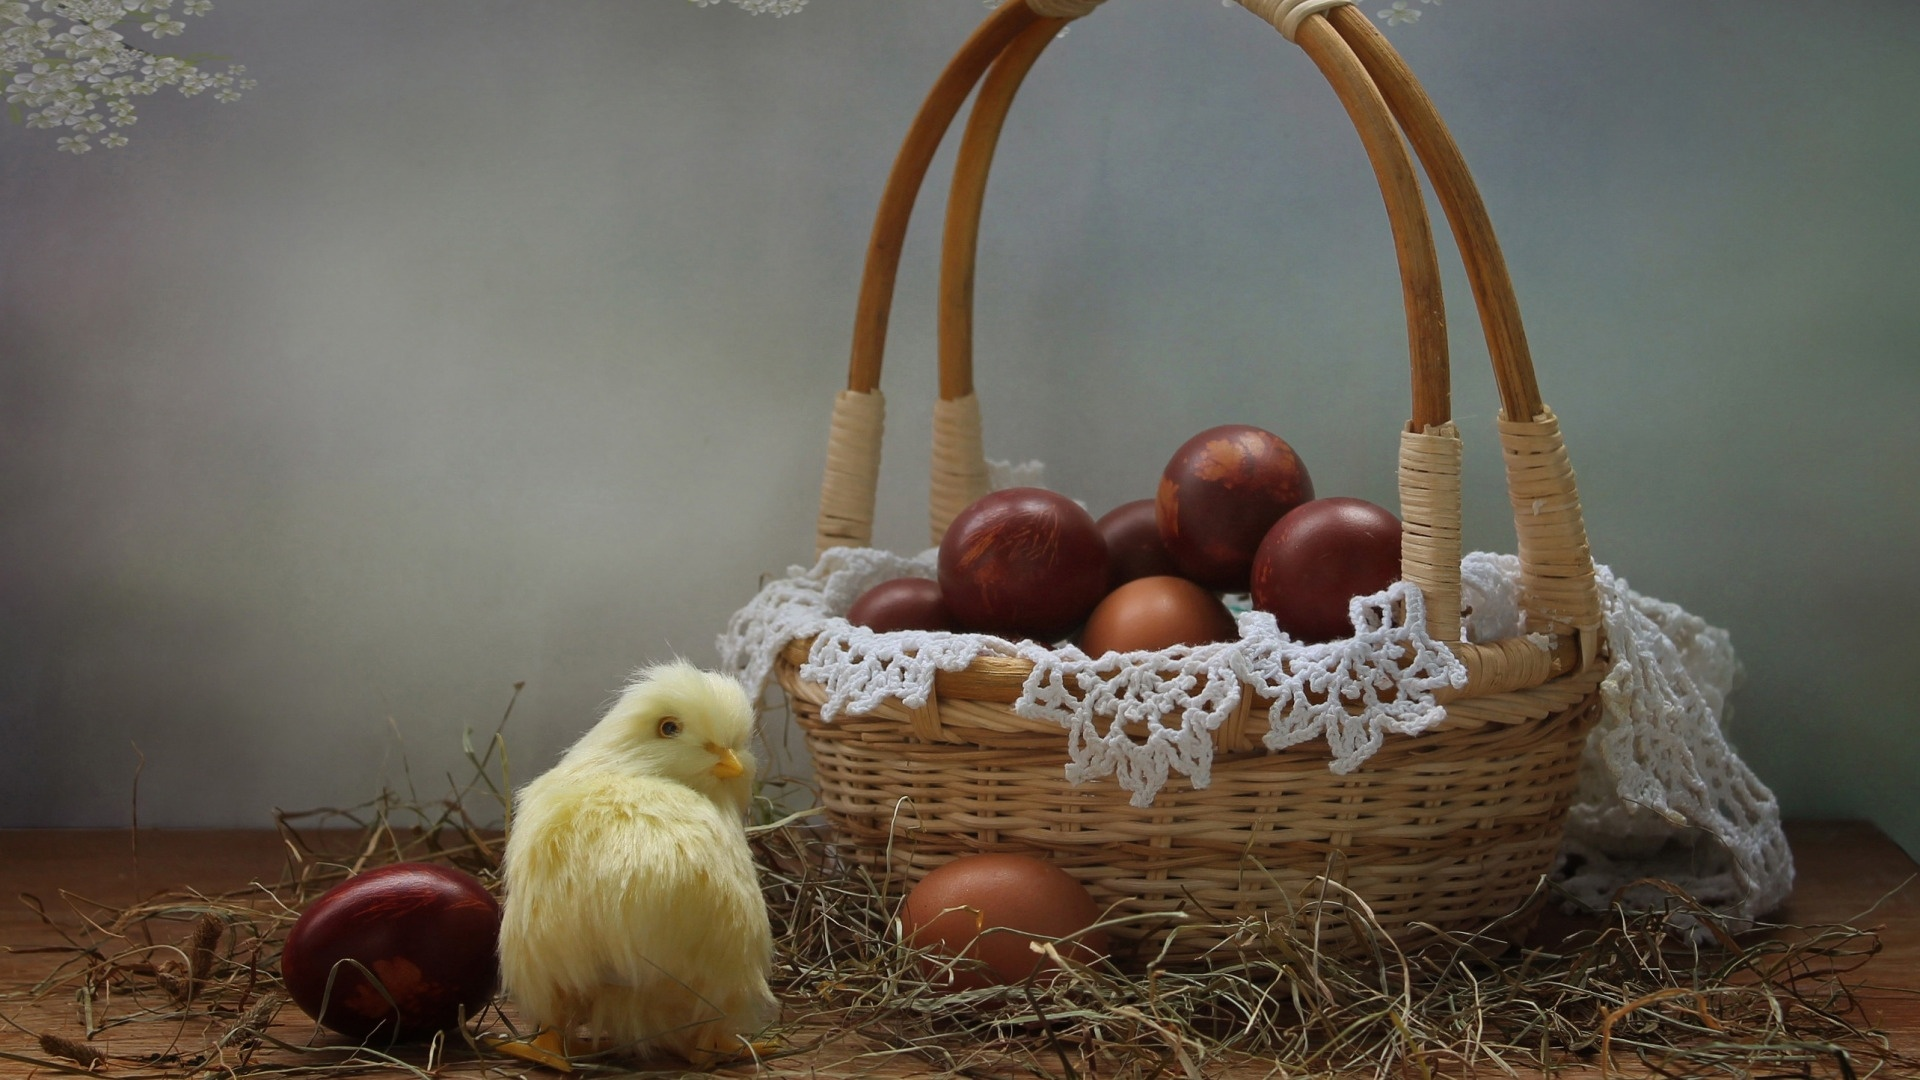 Easter Eggs In A Basket wallpaper photo hd